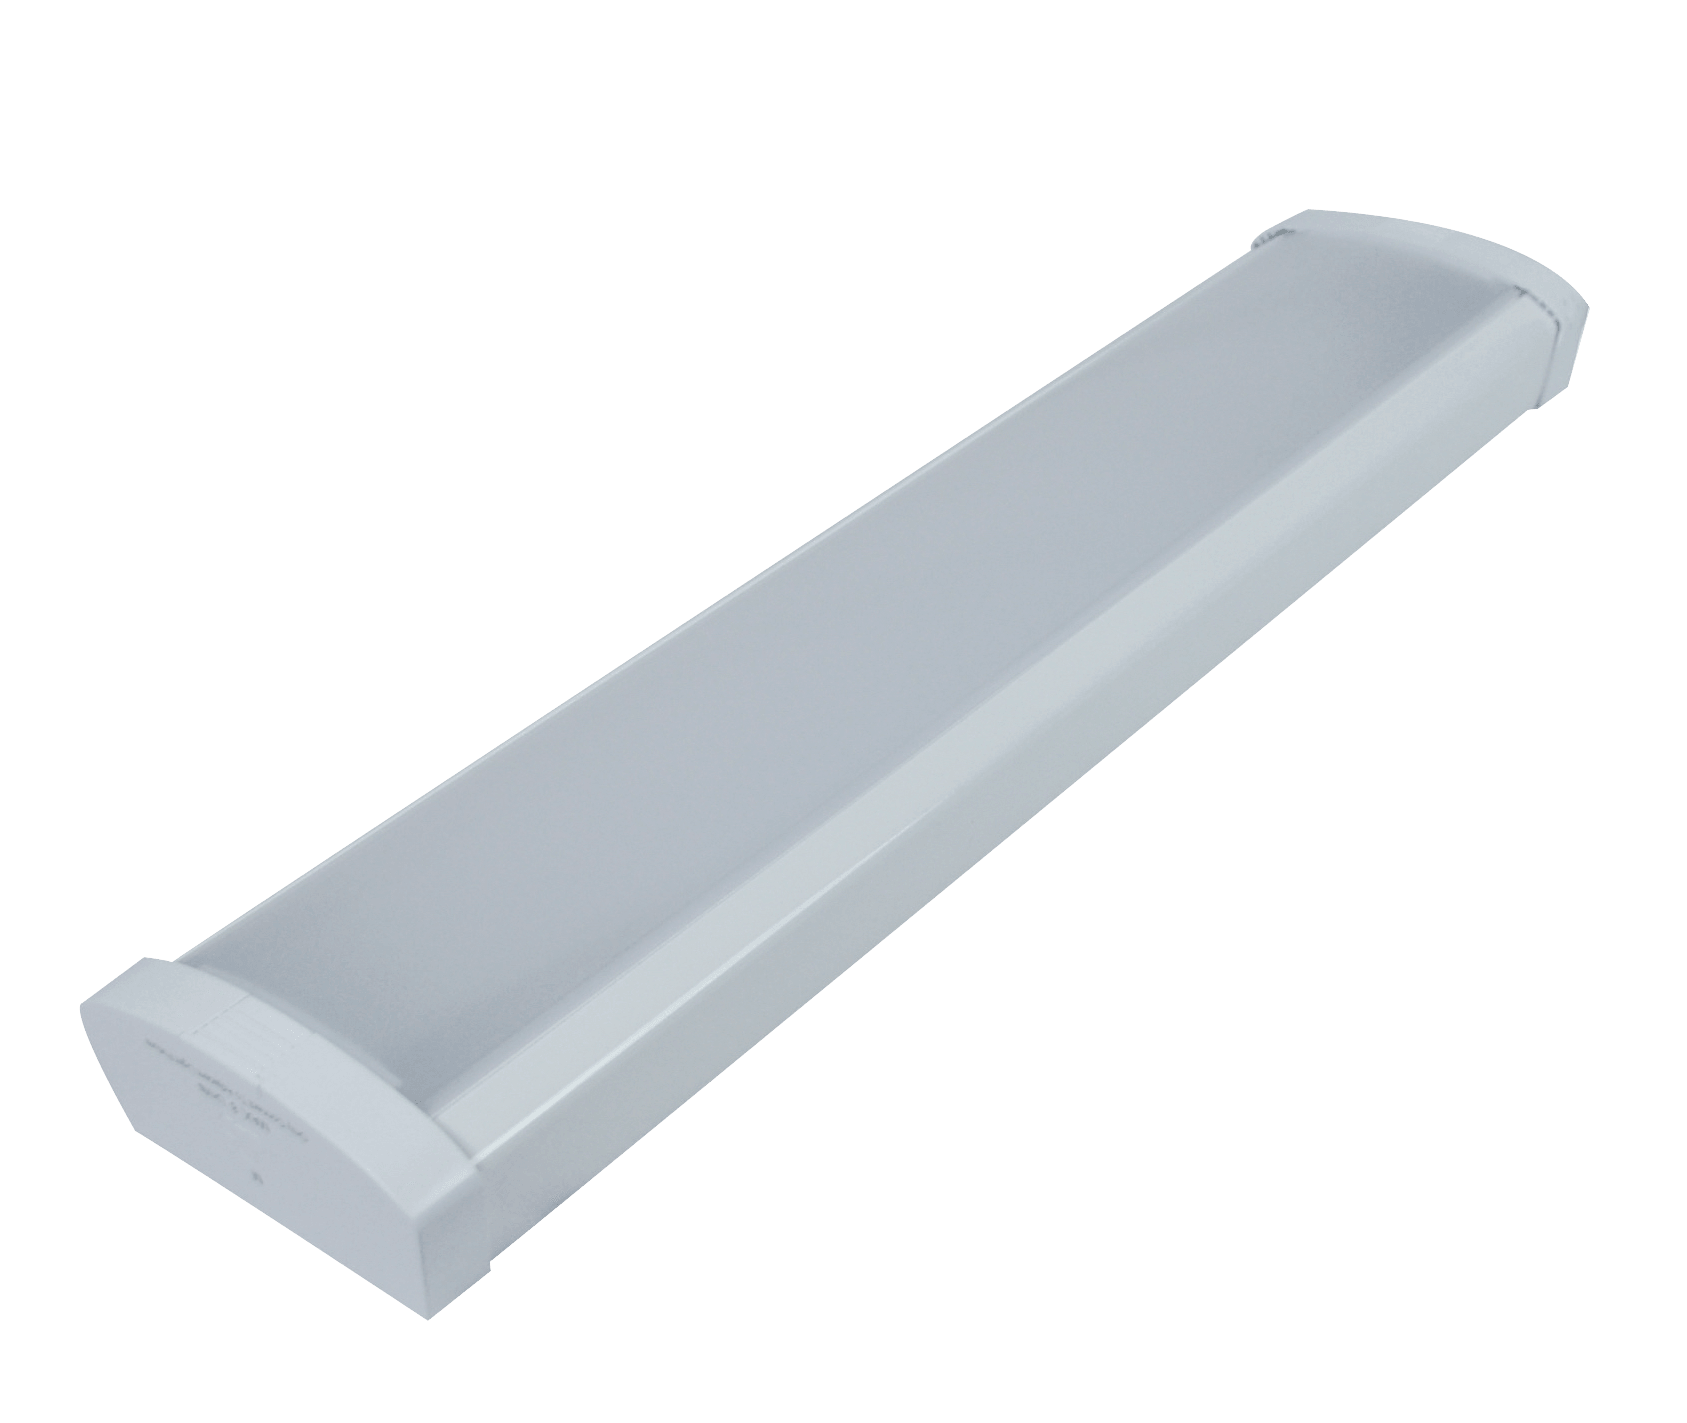 The RAB Design SMW2D-LED surface mount wrap is a 2' linkable LED fixture ideal for indoor use. It features a link connector for easy linking with multiple fixtures. SKU#: RABSMW2DLED, RAB080274 UPC: 061184802743